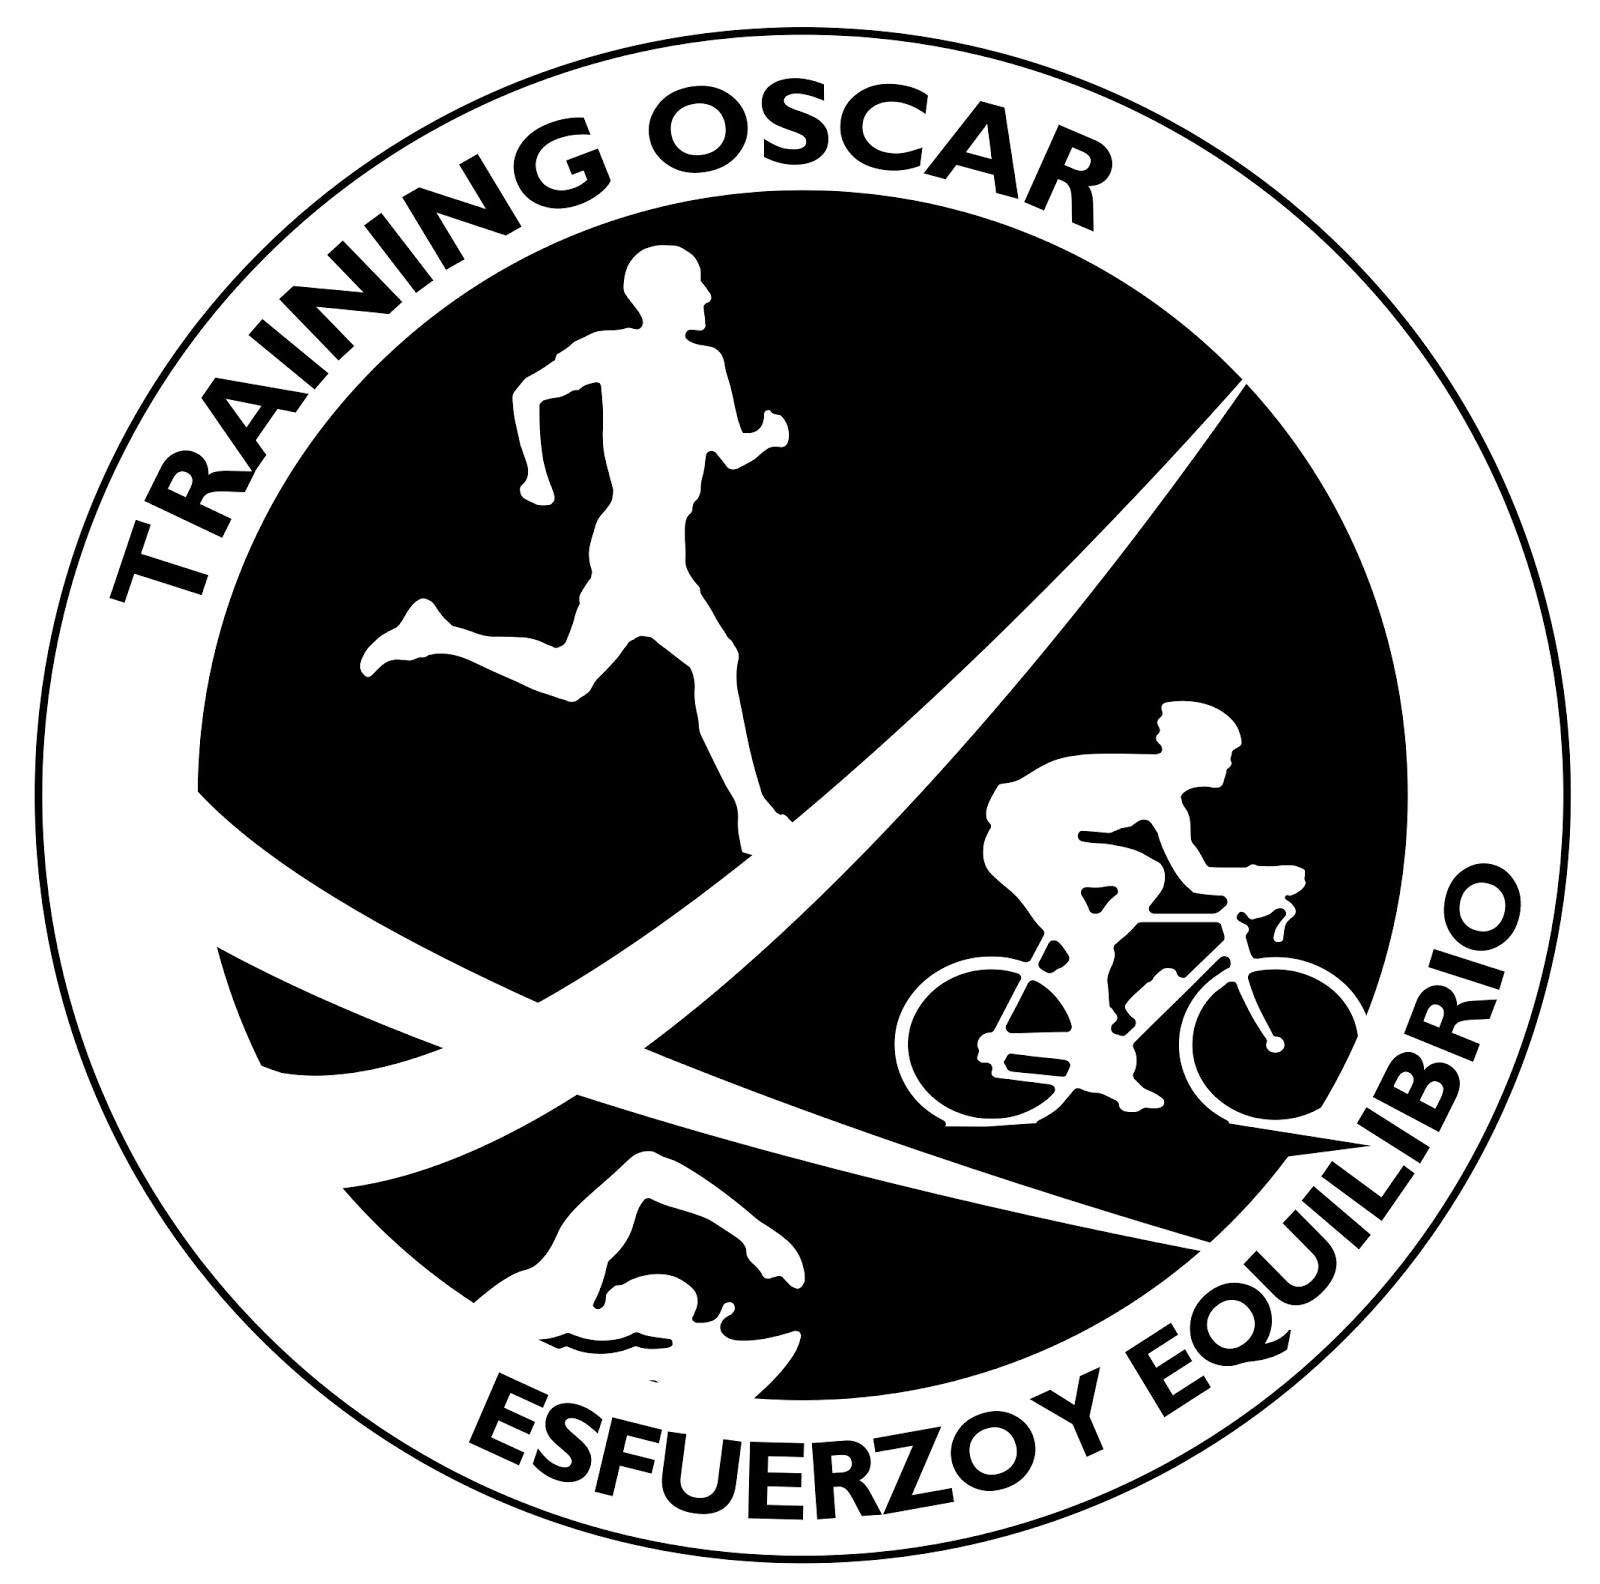 TRAINING ÓSCAR